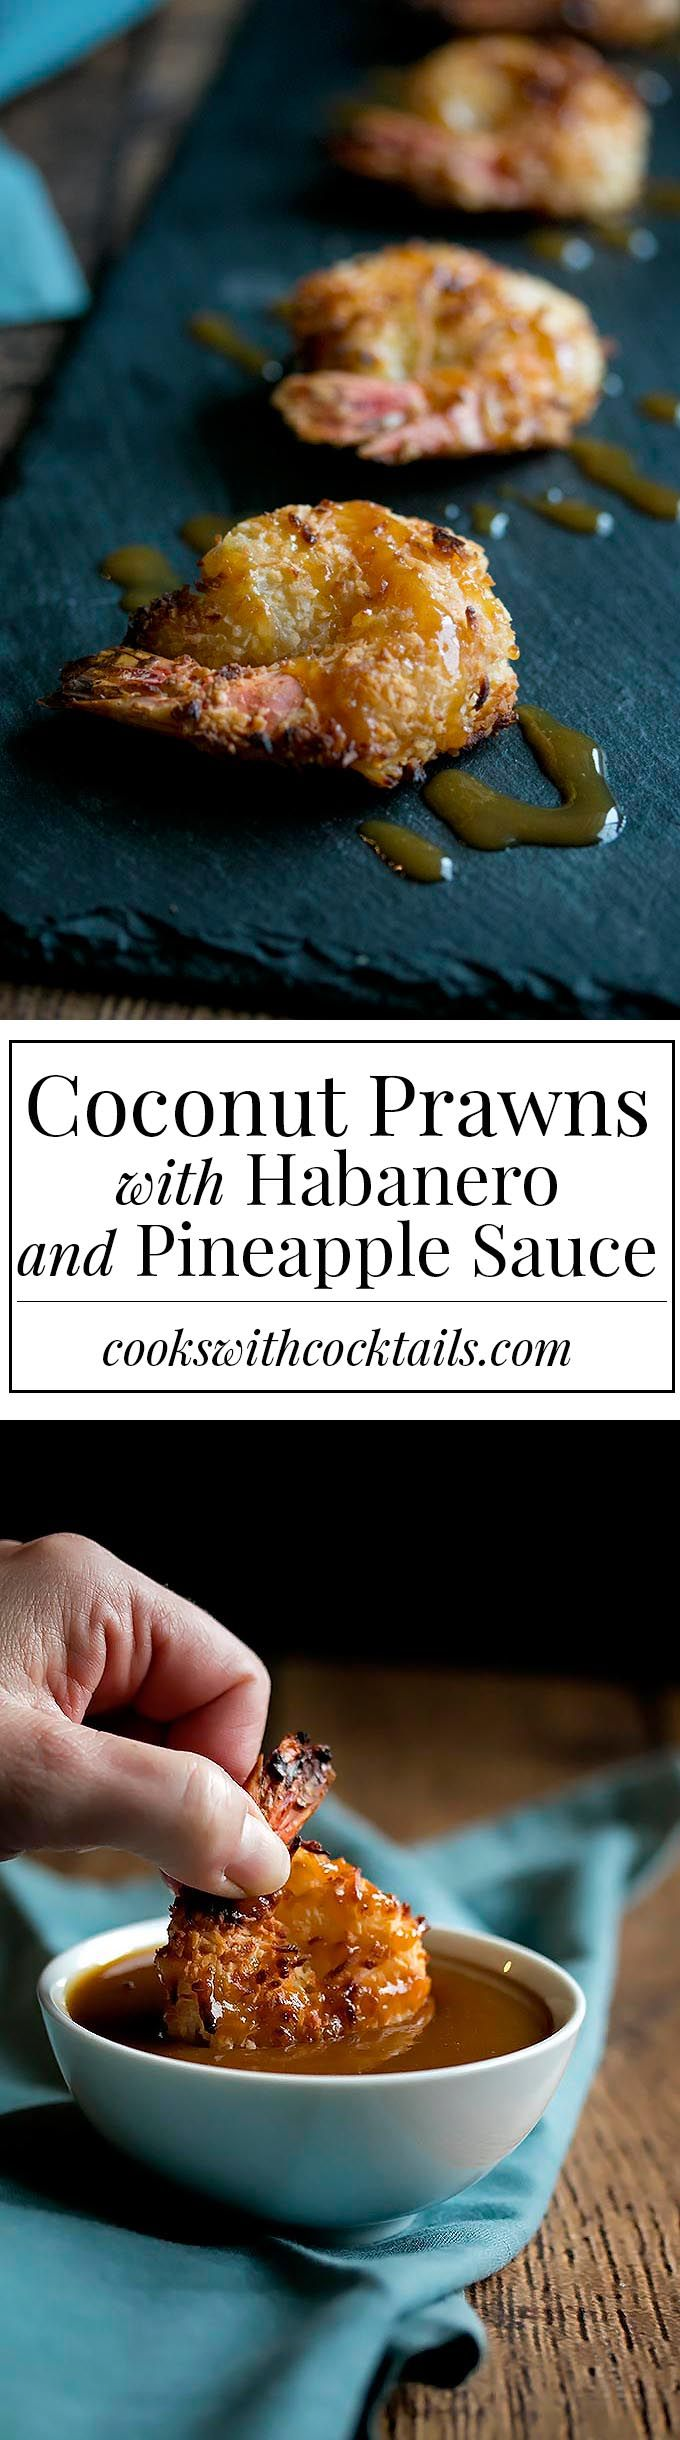 Coconut Prawns with Habanero and Pineapple Sauce